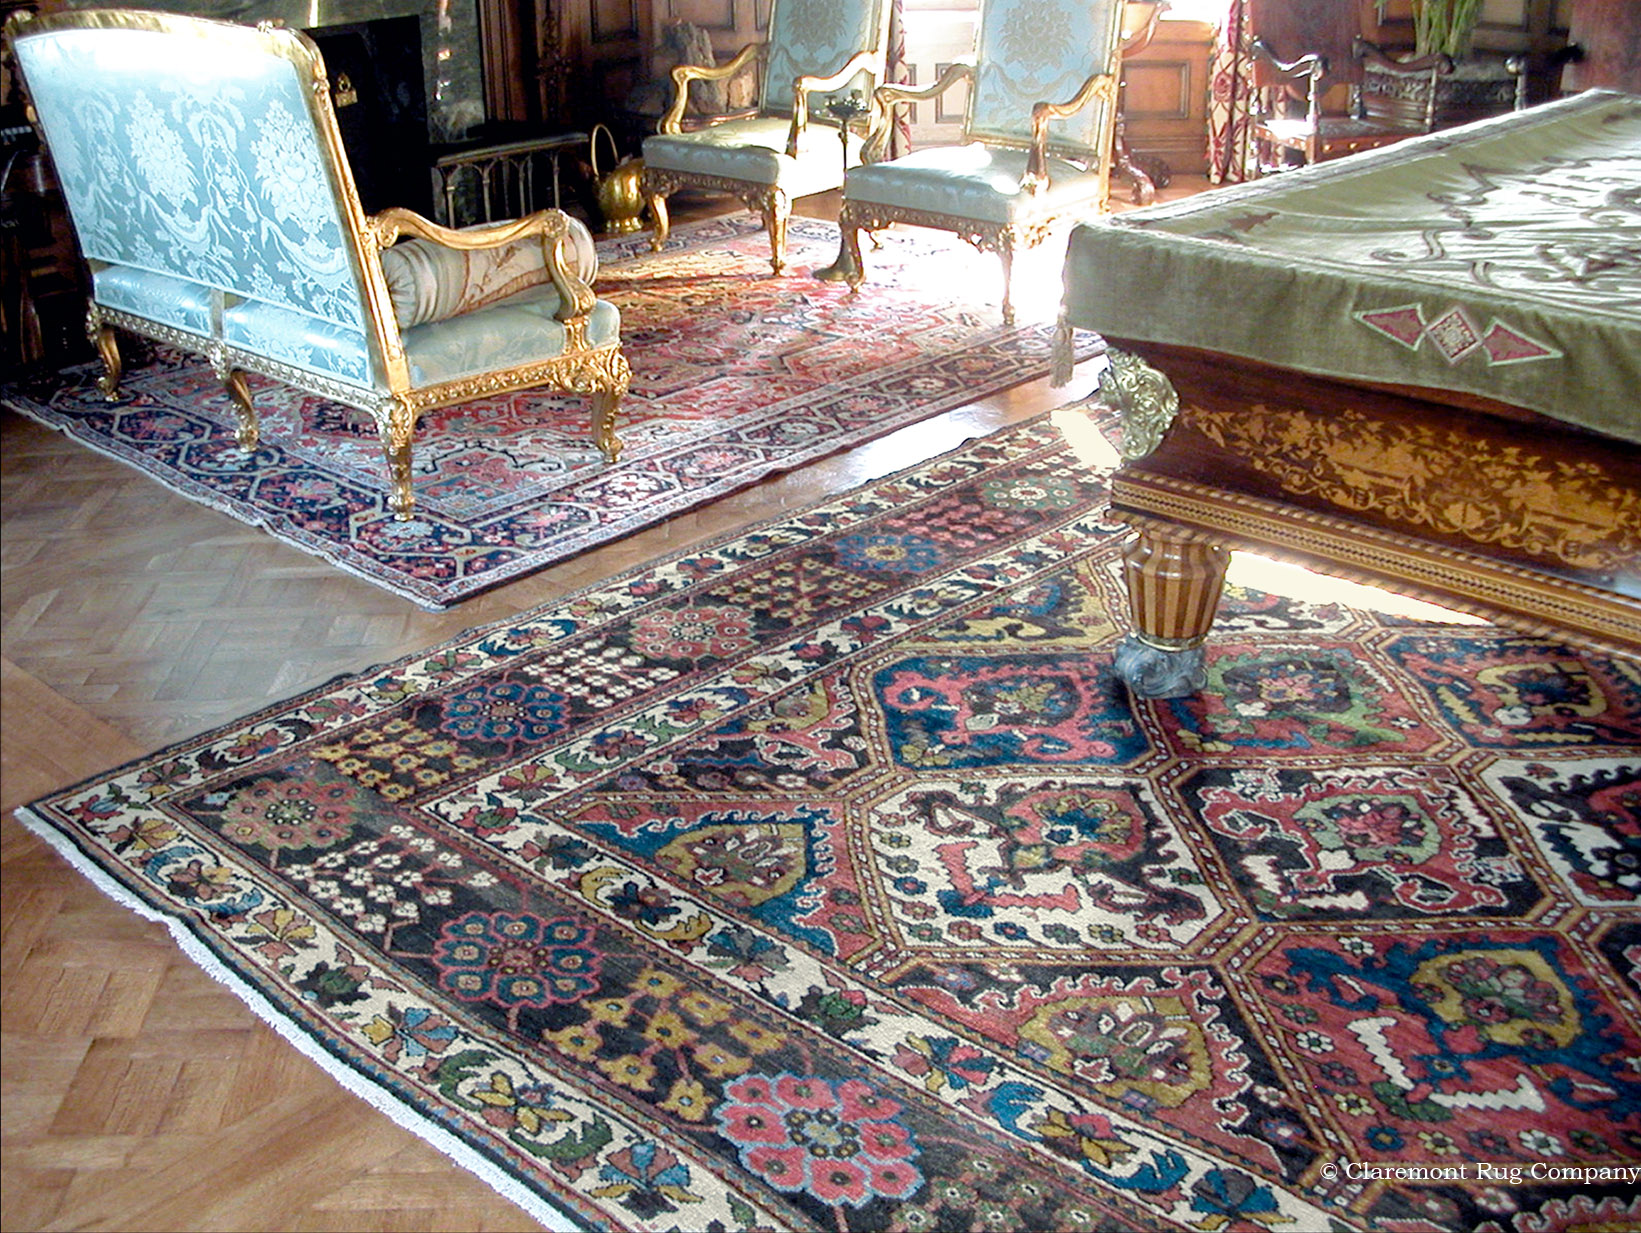 Guide To Antique Persian Bakhtiari Rugs Claremont Rug Company